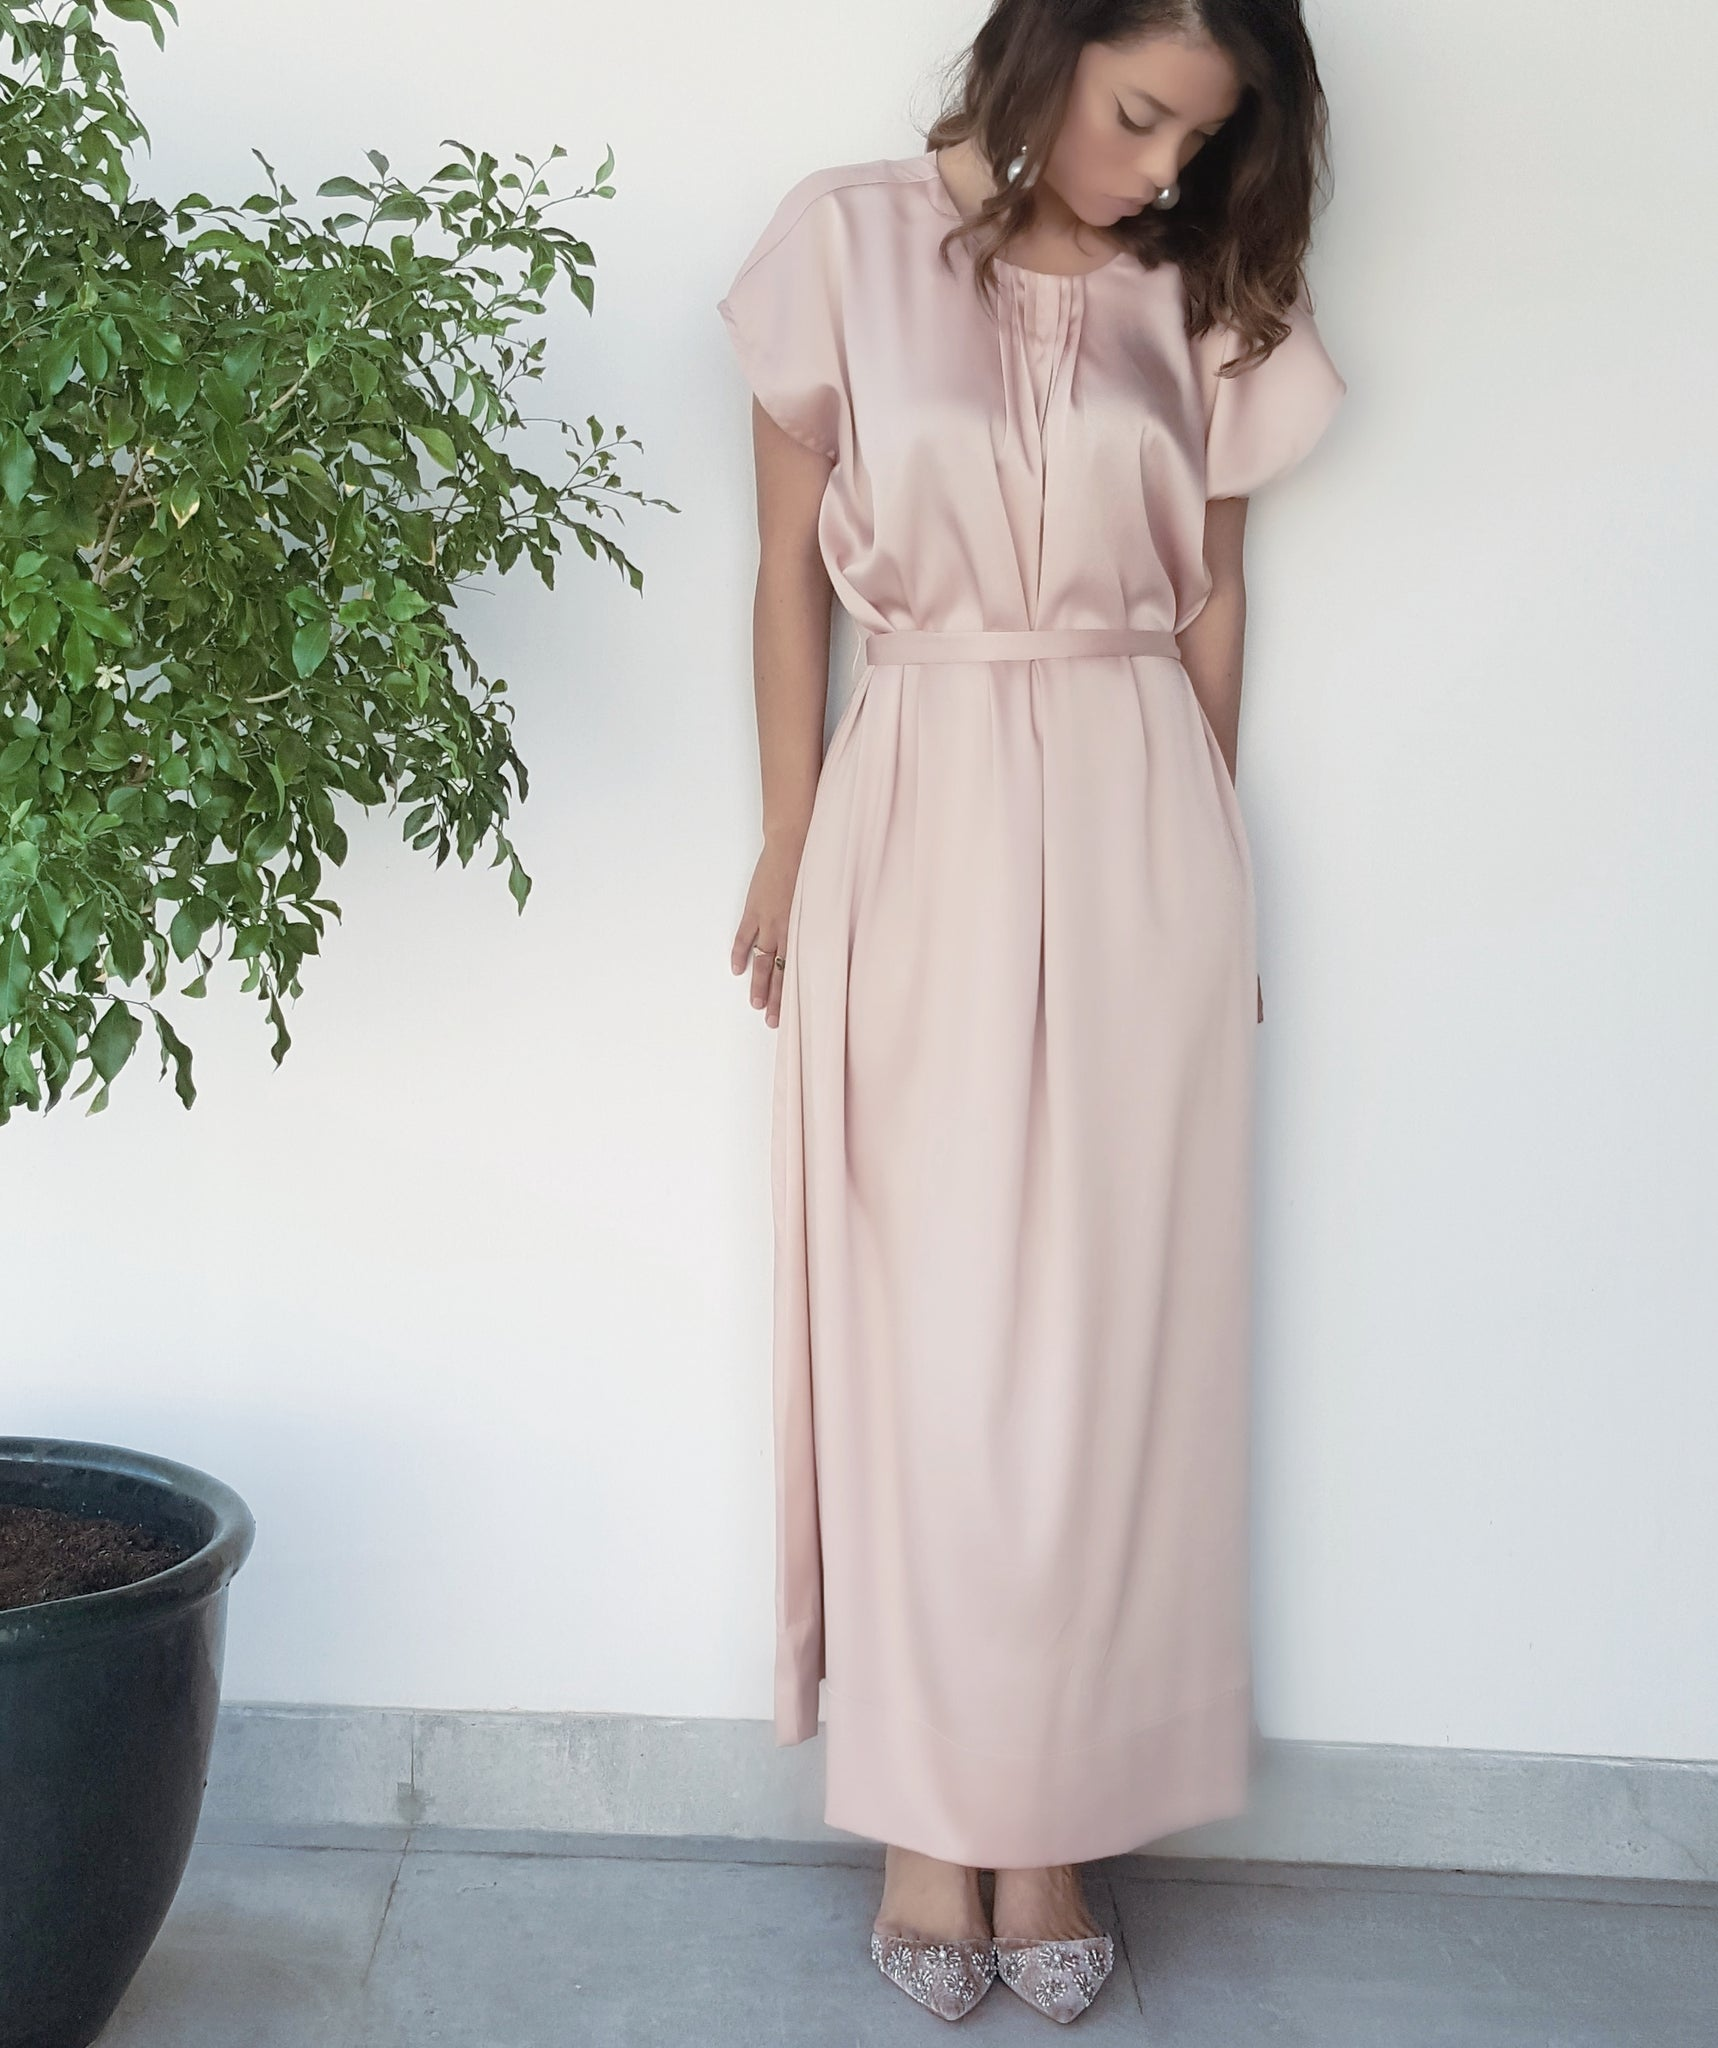 SS18 SATIN SILK MIX PEACH NUDE SHORT SLEEVE BELTED TUNIC